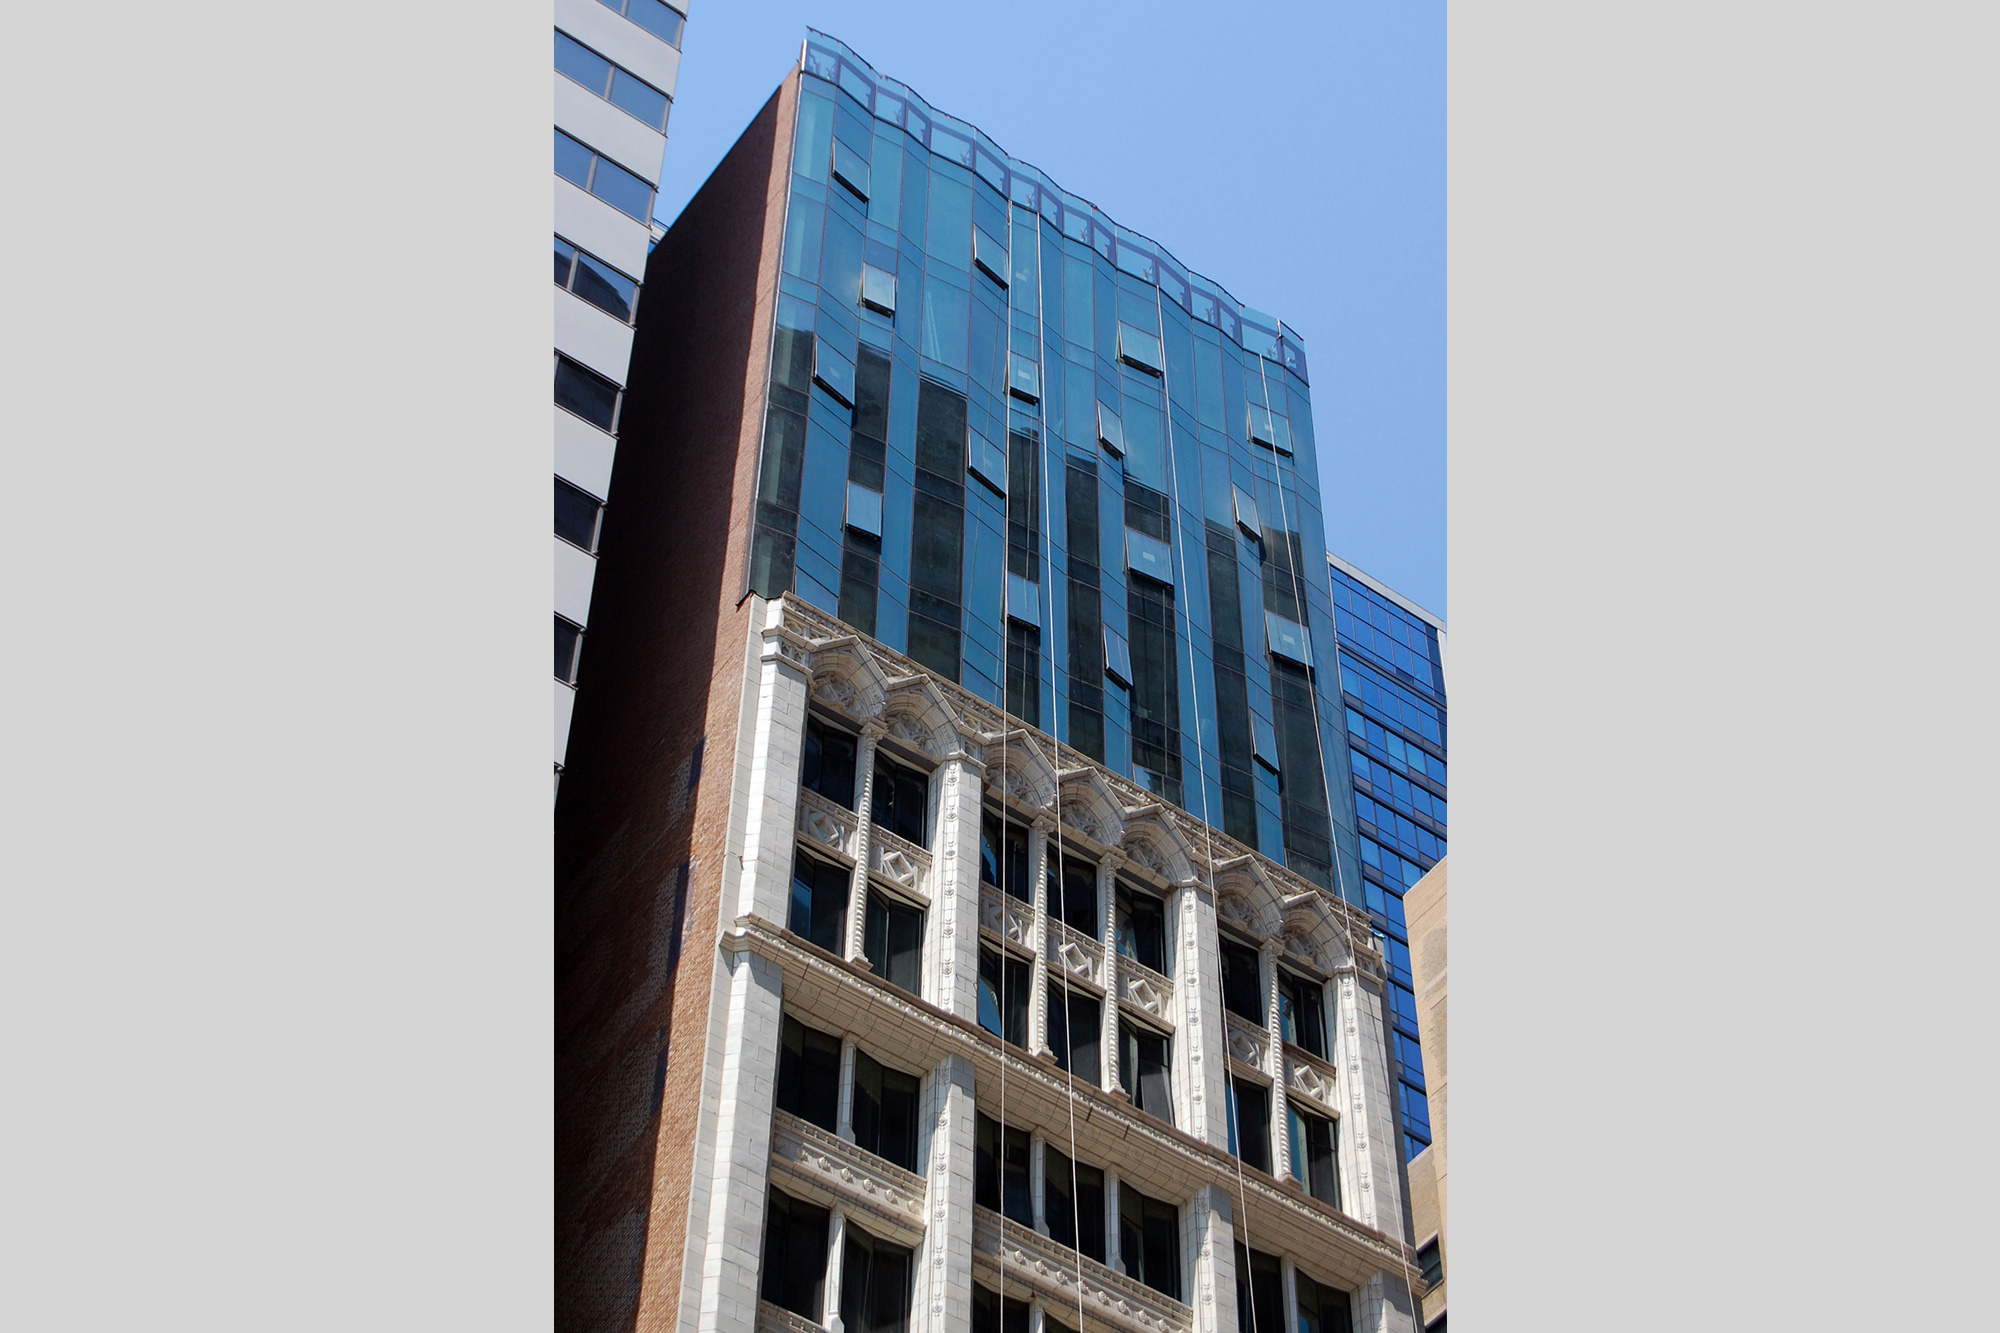 168 N Michigan Ave Exterior 3